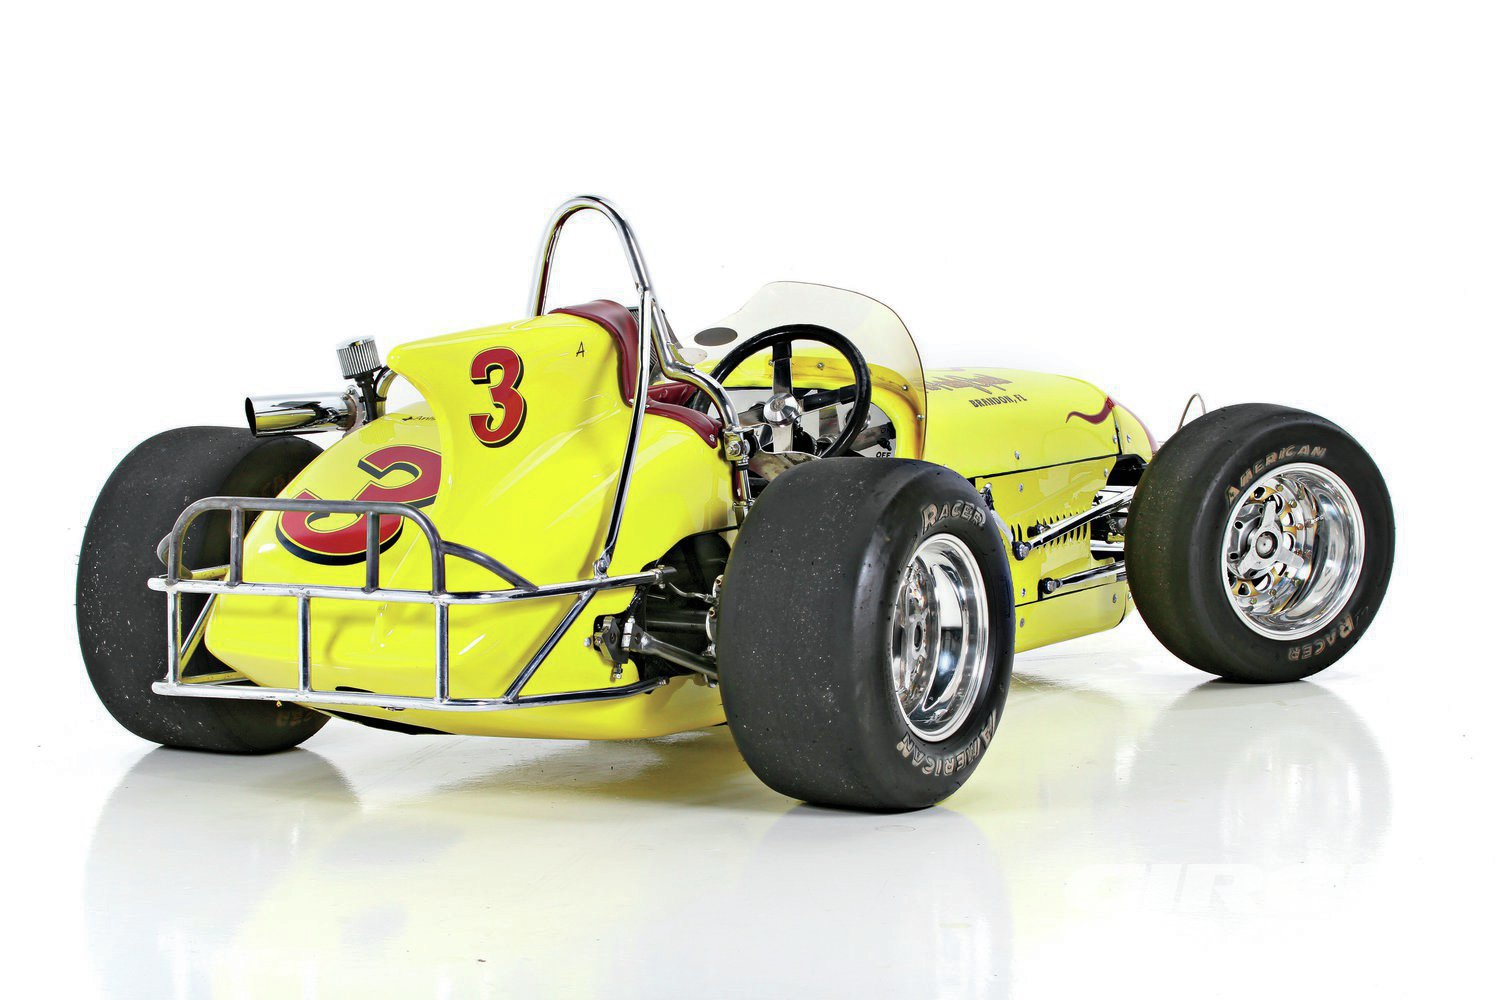 The rear fin section of the car is hand formed out of aluminum. The panel was constructed in six pieces. Though not original, the car rides on Weld Racing wheels and American Racer tires. In it day, the car was run on dirt, but now it sees duty on asphalt tracks in central Florida.